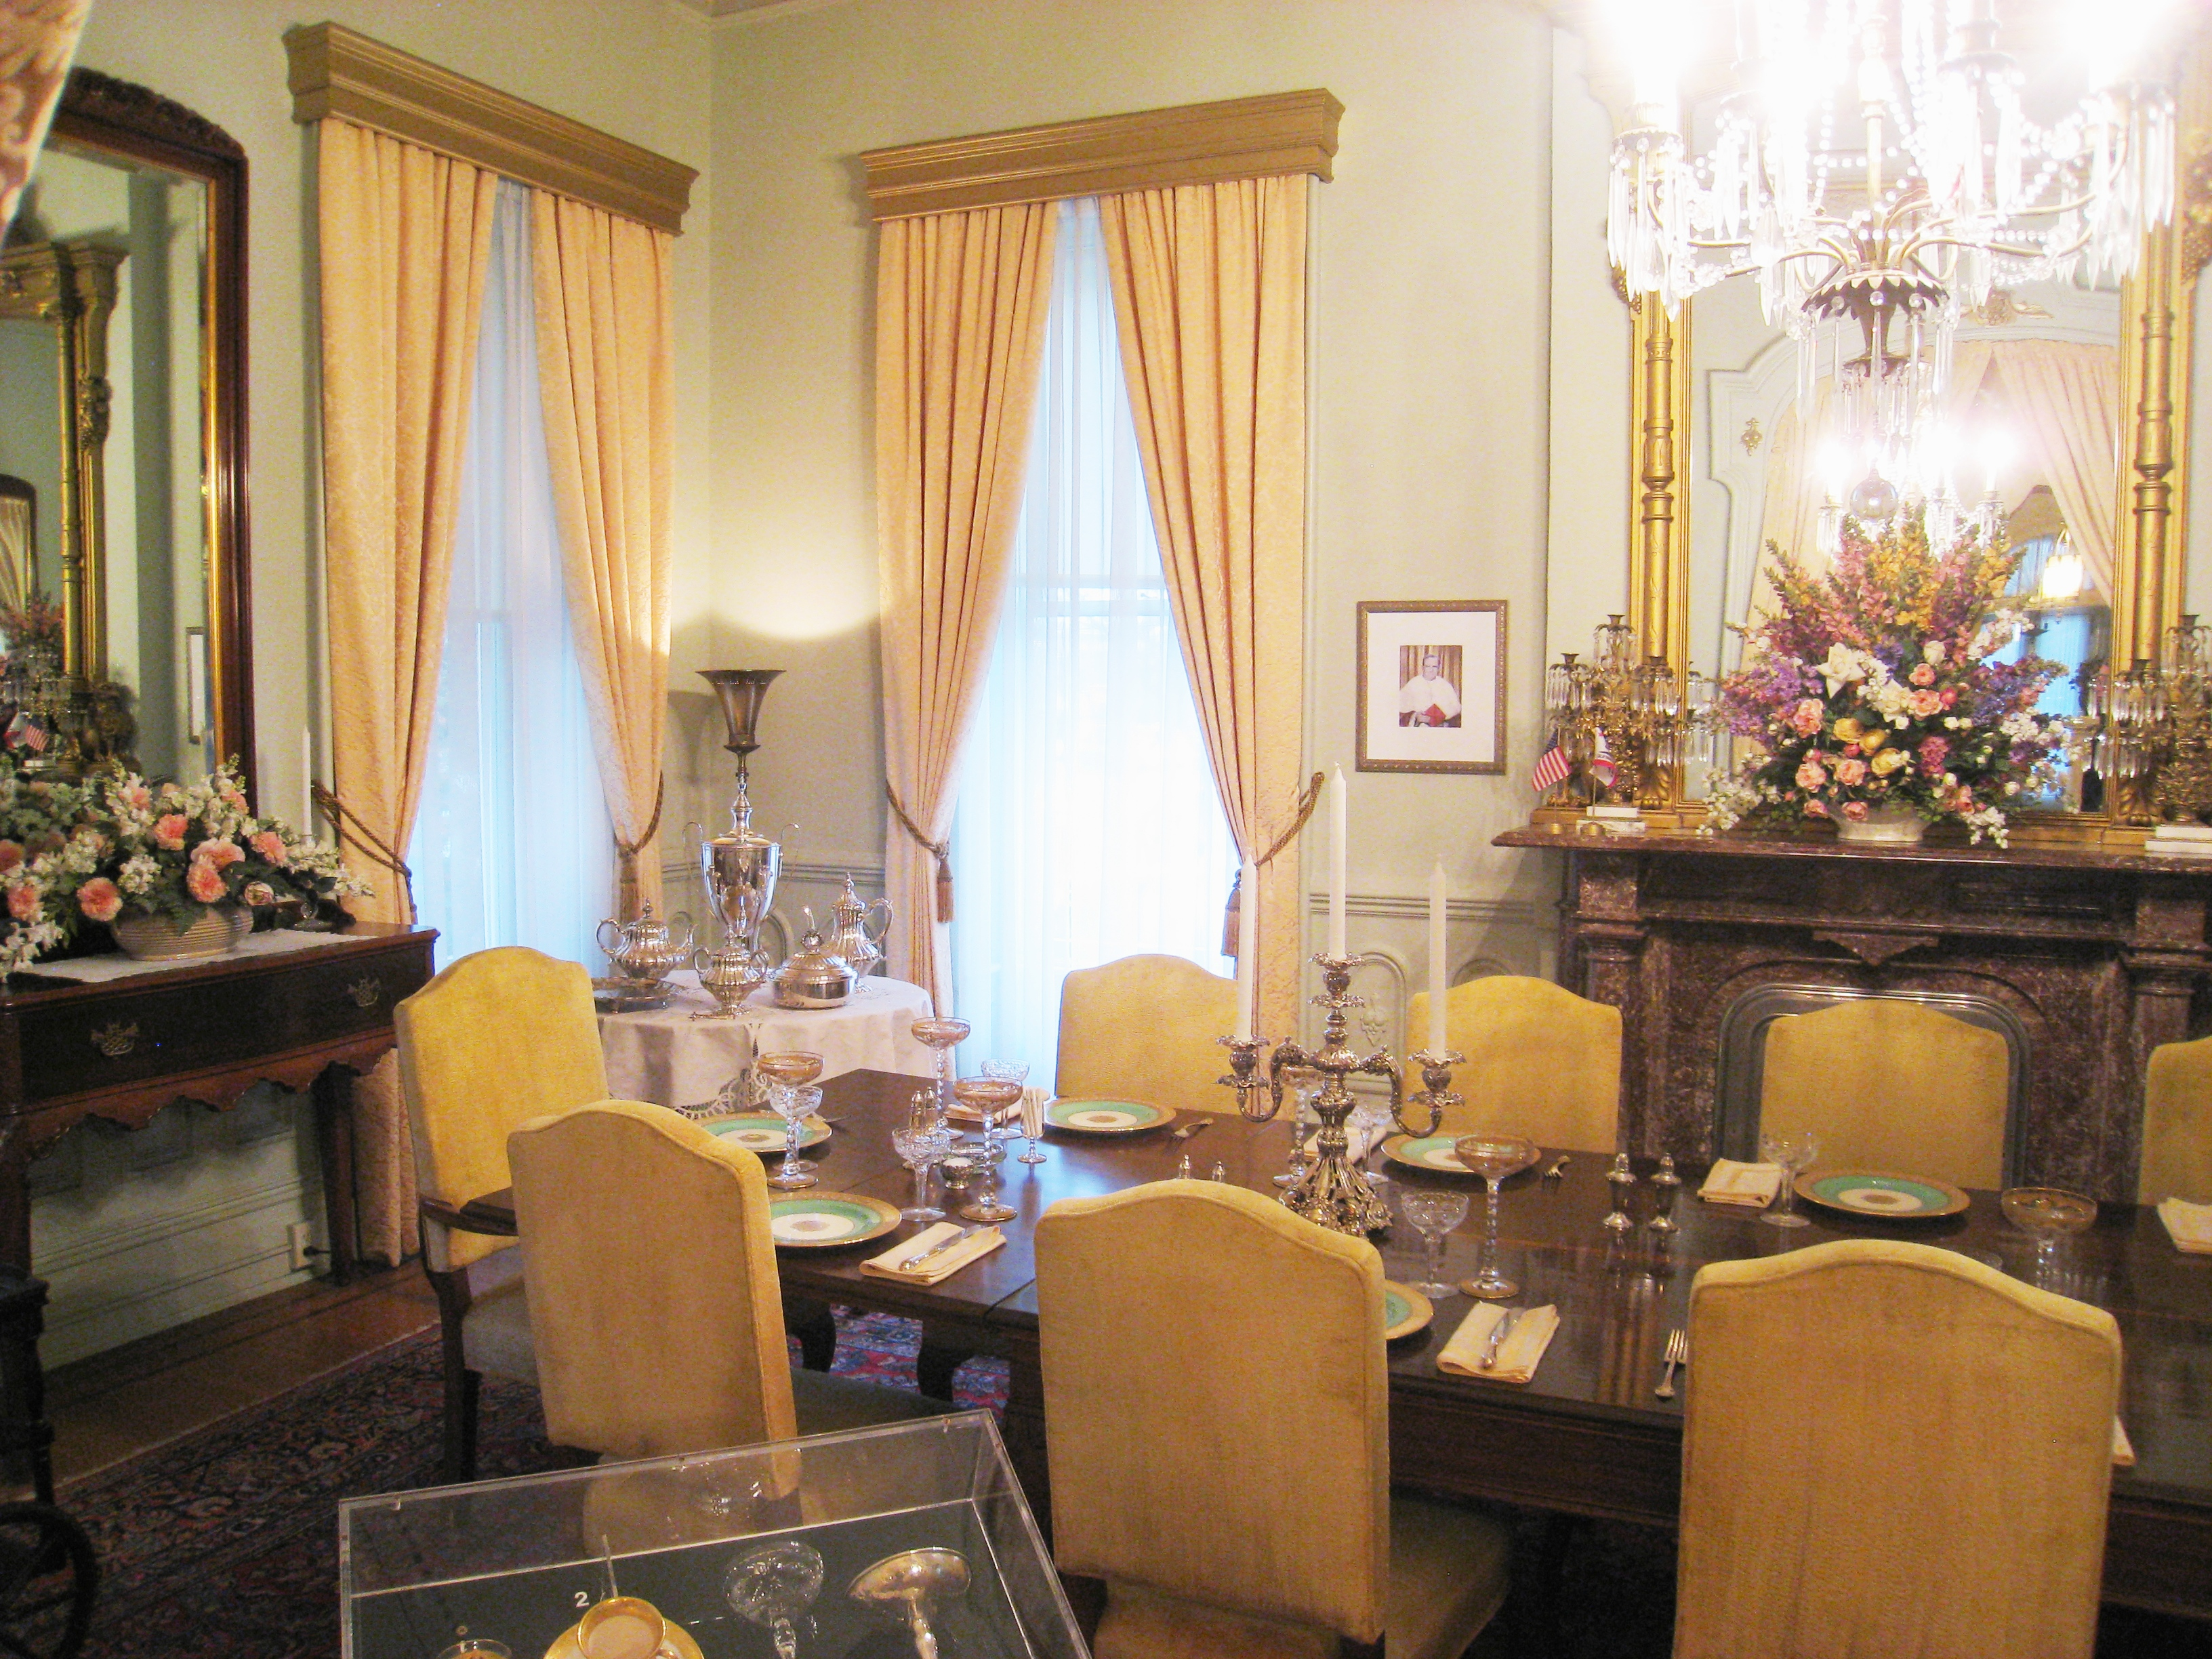 file:governor's mansion state historic park - dining room